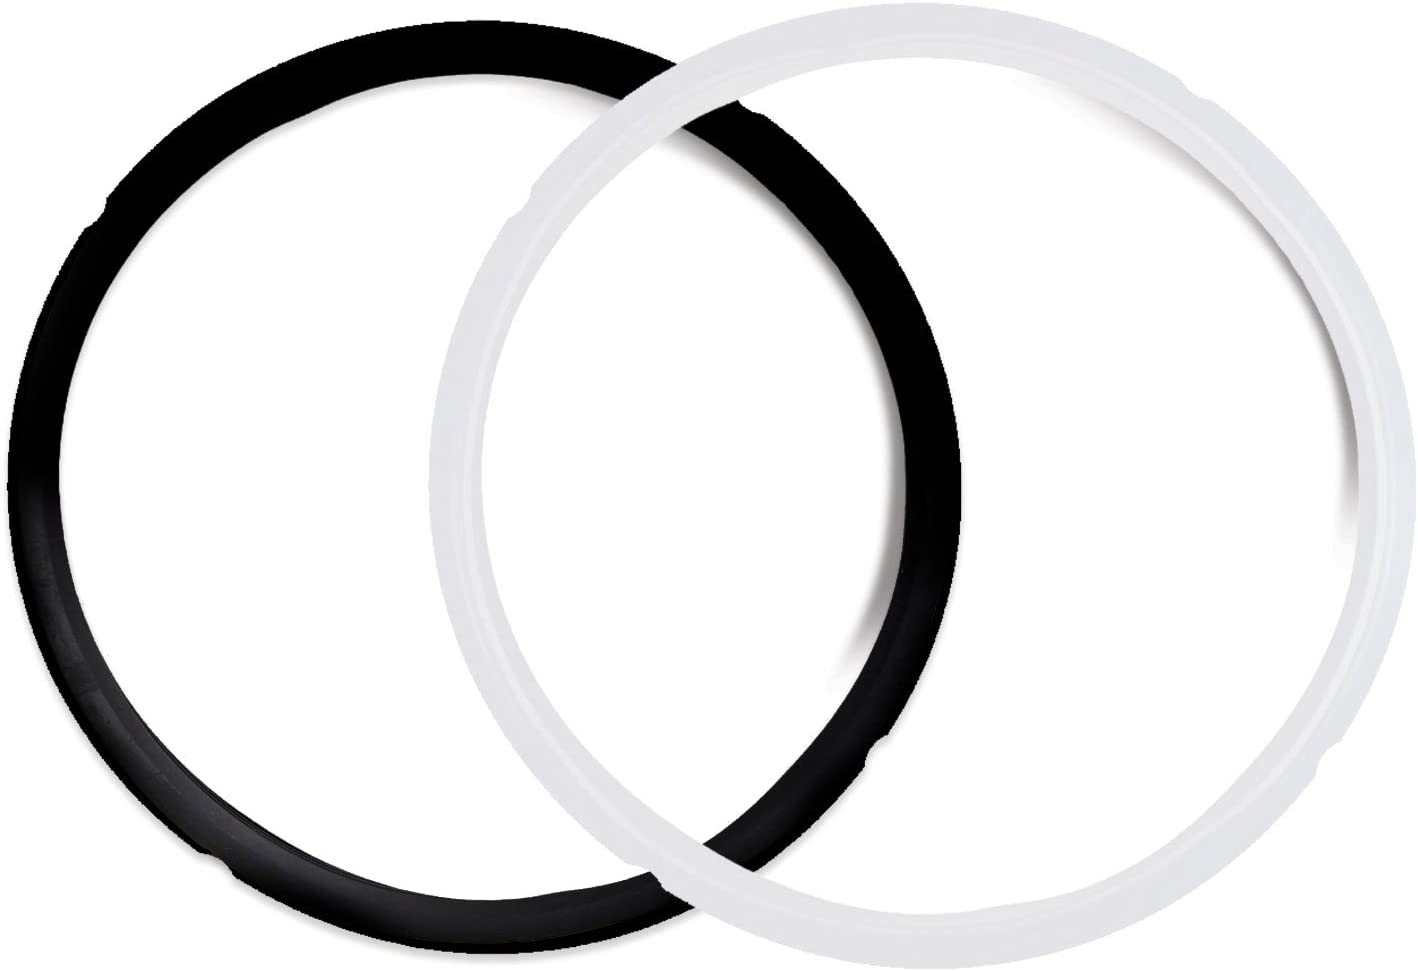 Pack of 2 Silicone Sealing Rings for 5 & 6 Quart - Fits IP-DUO60, IP-LUX60, IP-DUO50, IP-LUX50, Smart-60, IP-CSG60 and IP-CSG50